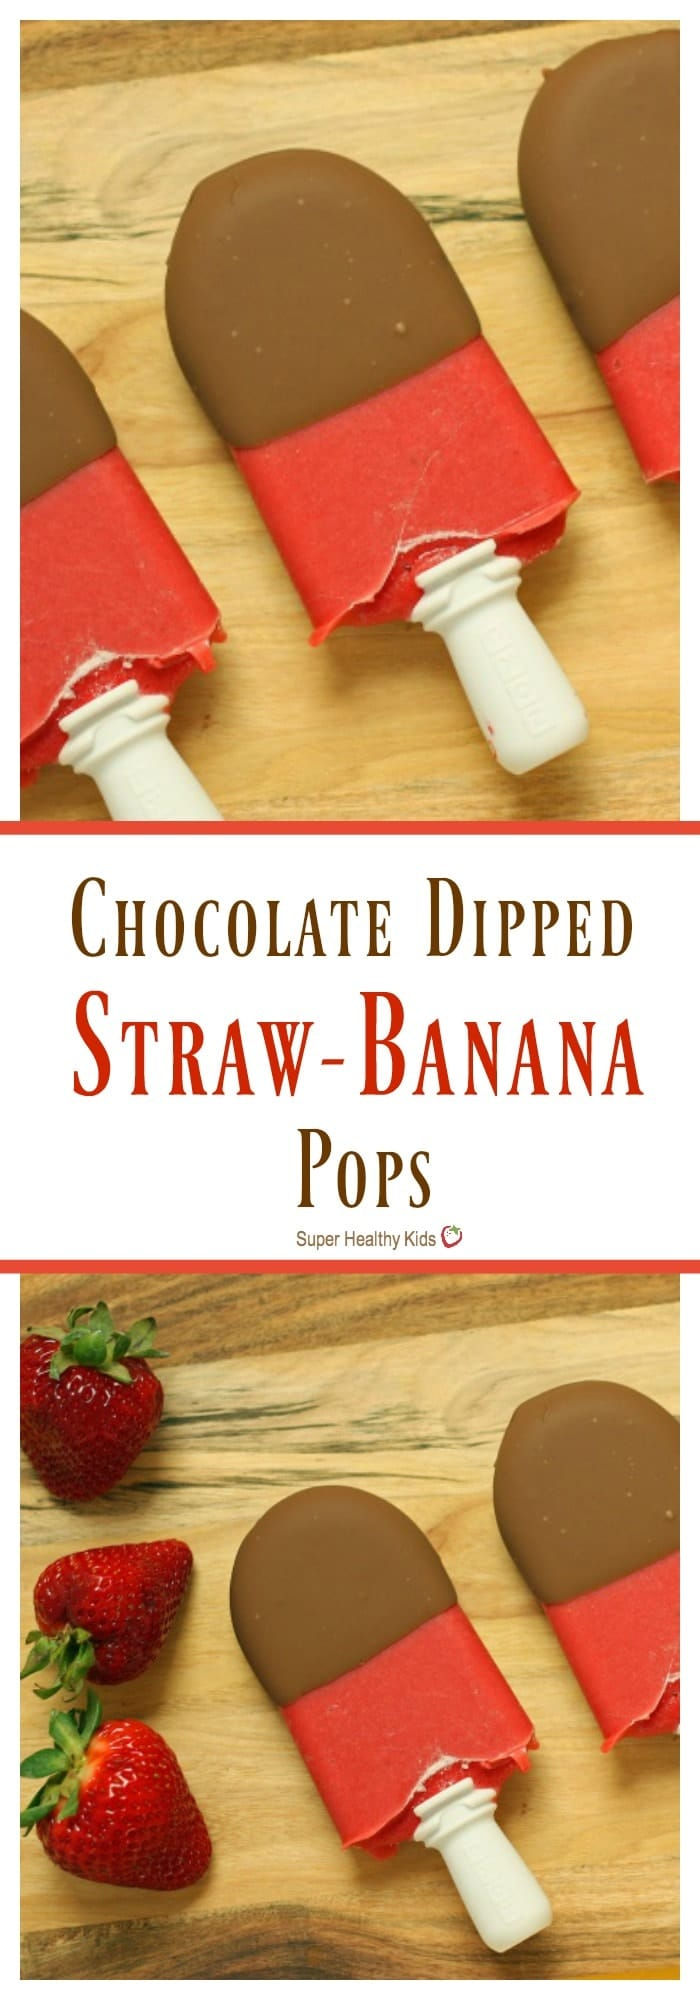 FOOD - Chocolate Dipped Straw-Banana Pops. A healthy treat to hit that sweet spot! https://www.superhealthykids.com/chocolate-dipped-straw-banana-pops/